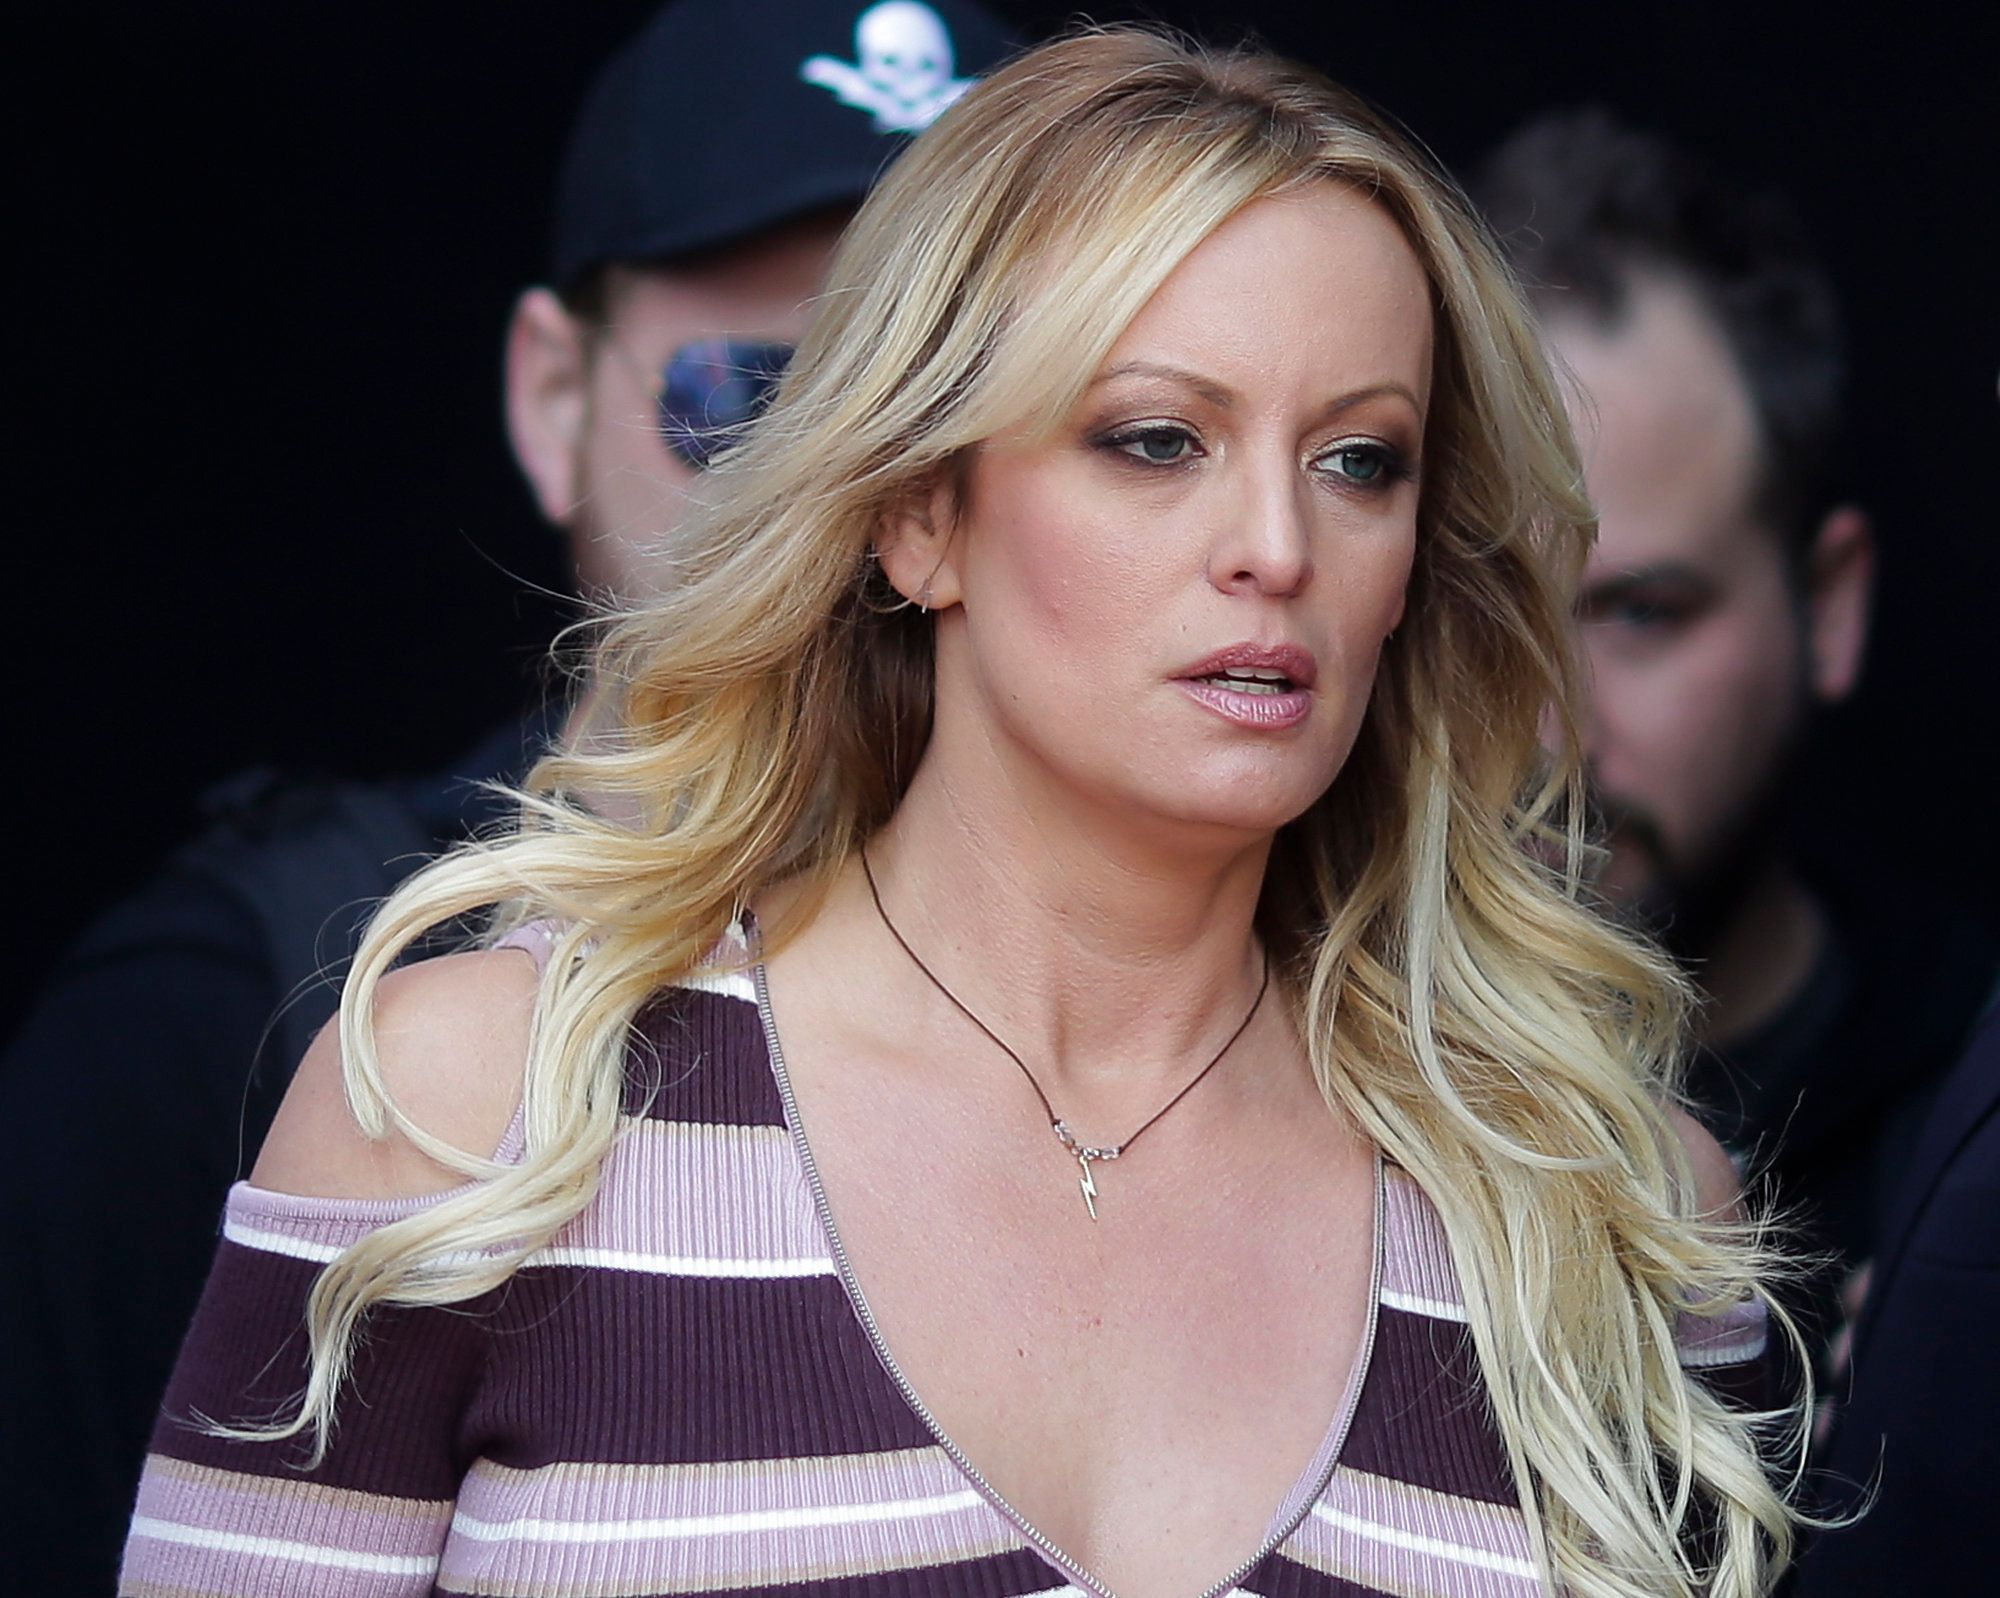 Stormy Daniels Ordered To Pay Nearly $300,000 In Trump's Legal Fees